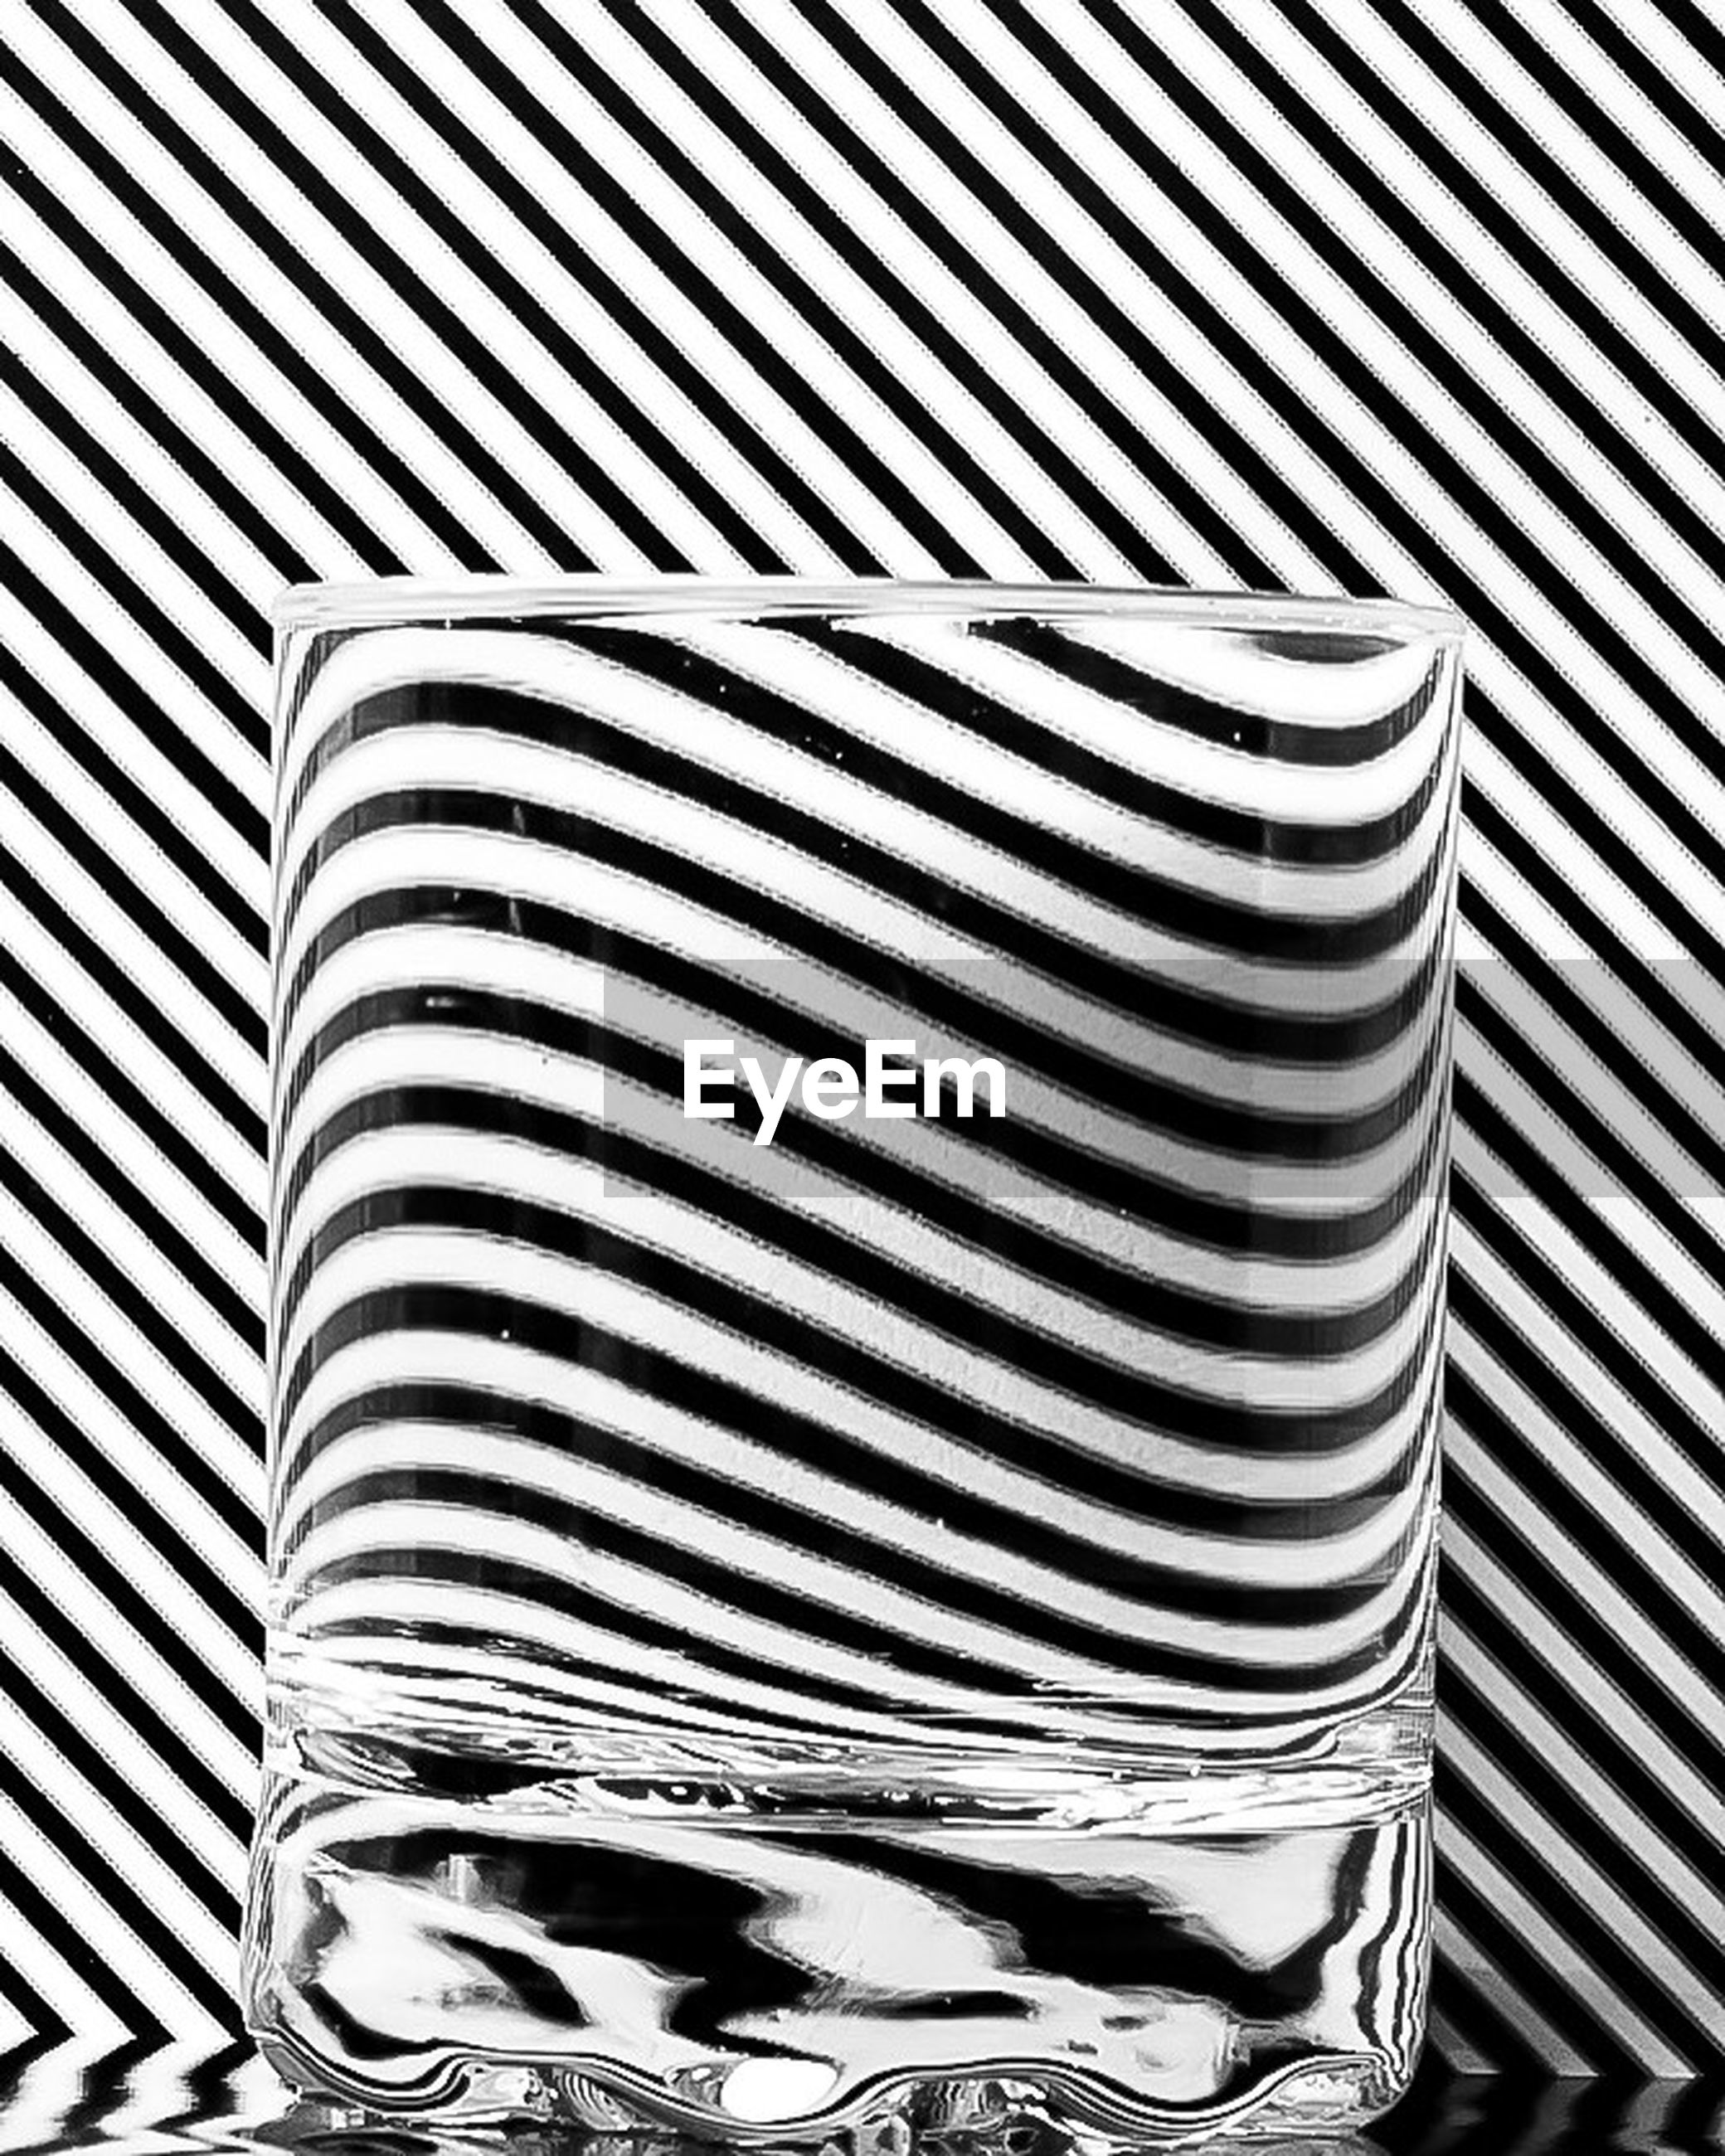 indoors, pattern, striped, low section, high angle view, standing, white color, wall - building feature, person, textile, shoe, close-up, day, design, fabric, casual clothing, lifestyles